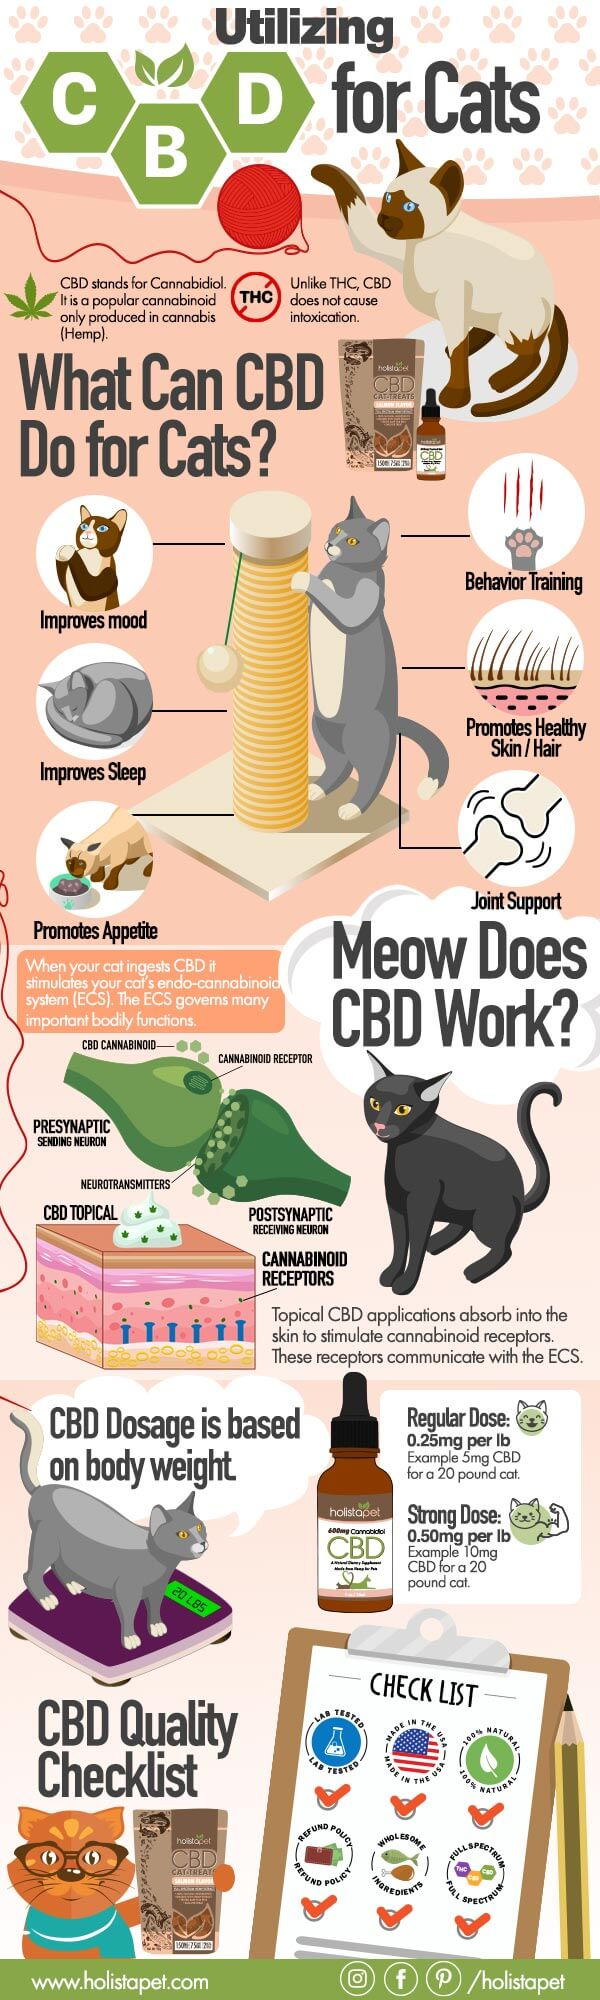 CBD-for-cats-infographic-plaza